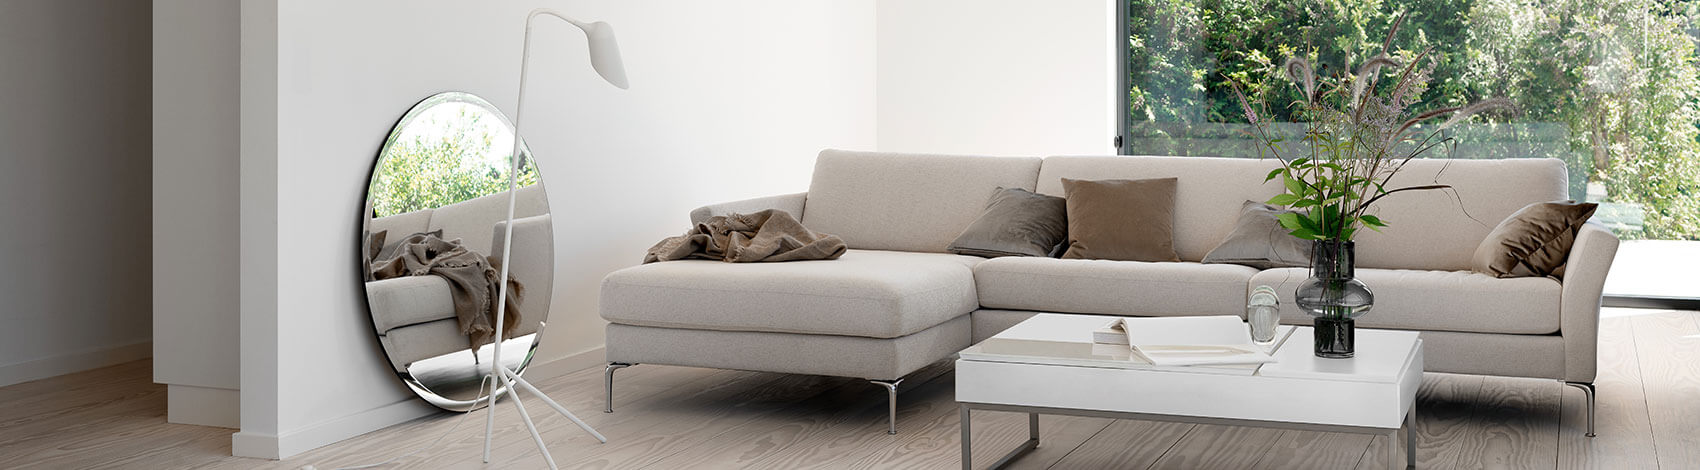 Living Room Ideas | Trends and Inspiration | BoConcept